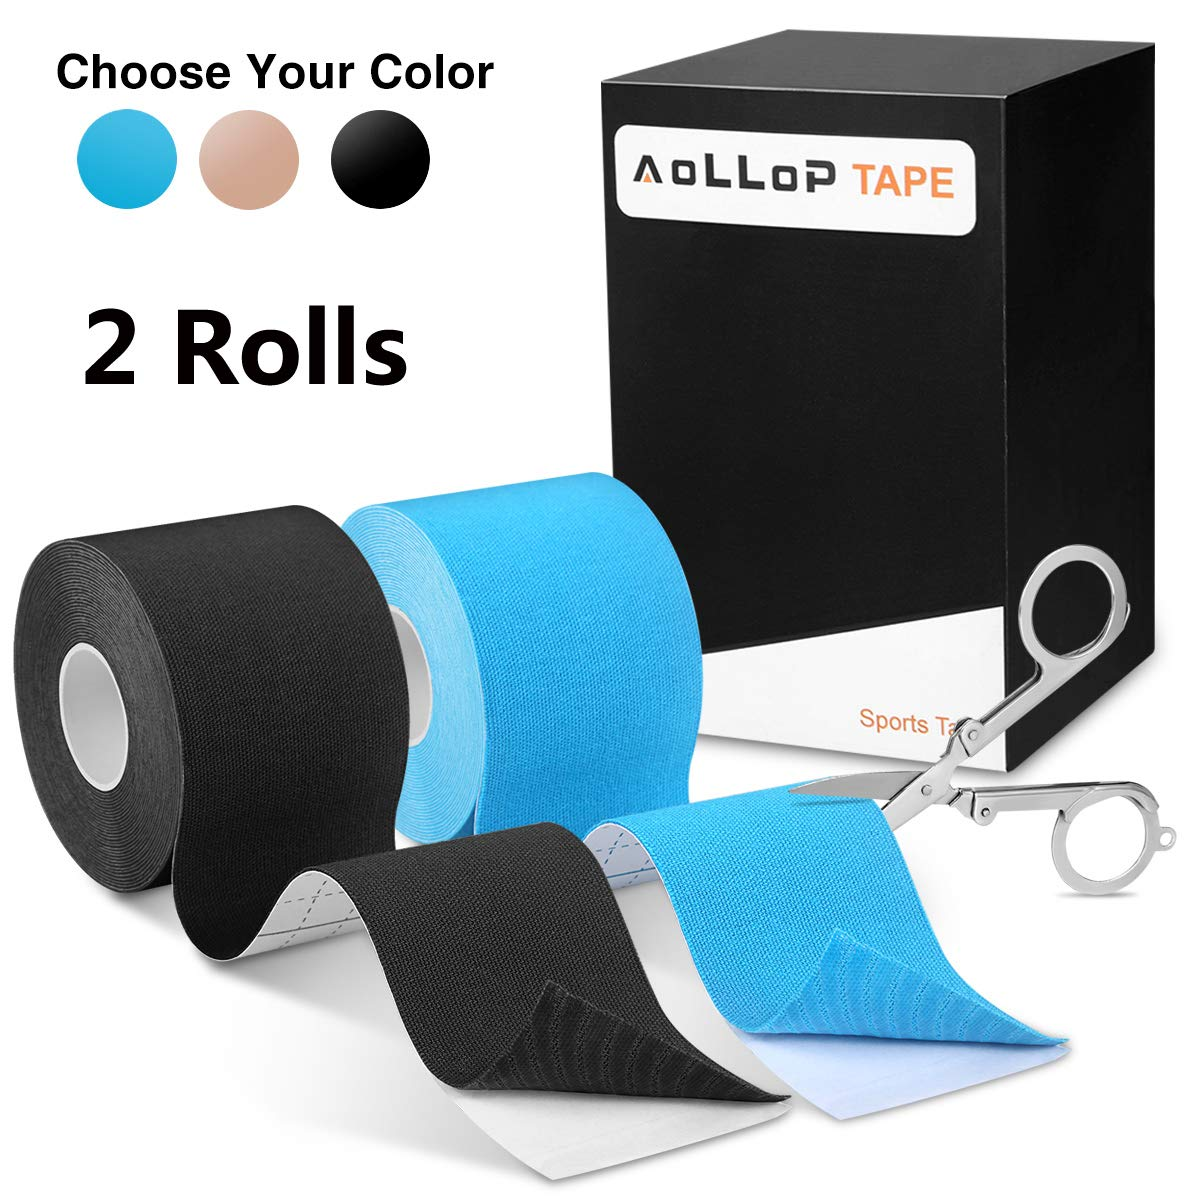 2 Pack Aollop Kinesiology Tape with Free Folding Scissor- Best Pain Relief Elastic Therapeutic Sports Tape for Muscle Joint ,Plantar Fasciitis, Knee Shoulder,Waterproof,Latex Free,Uncut 2'' x 16.5 ft